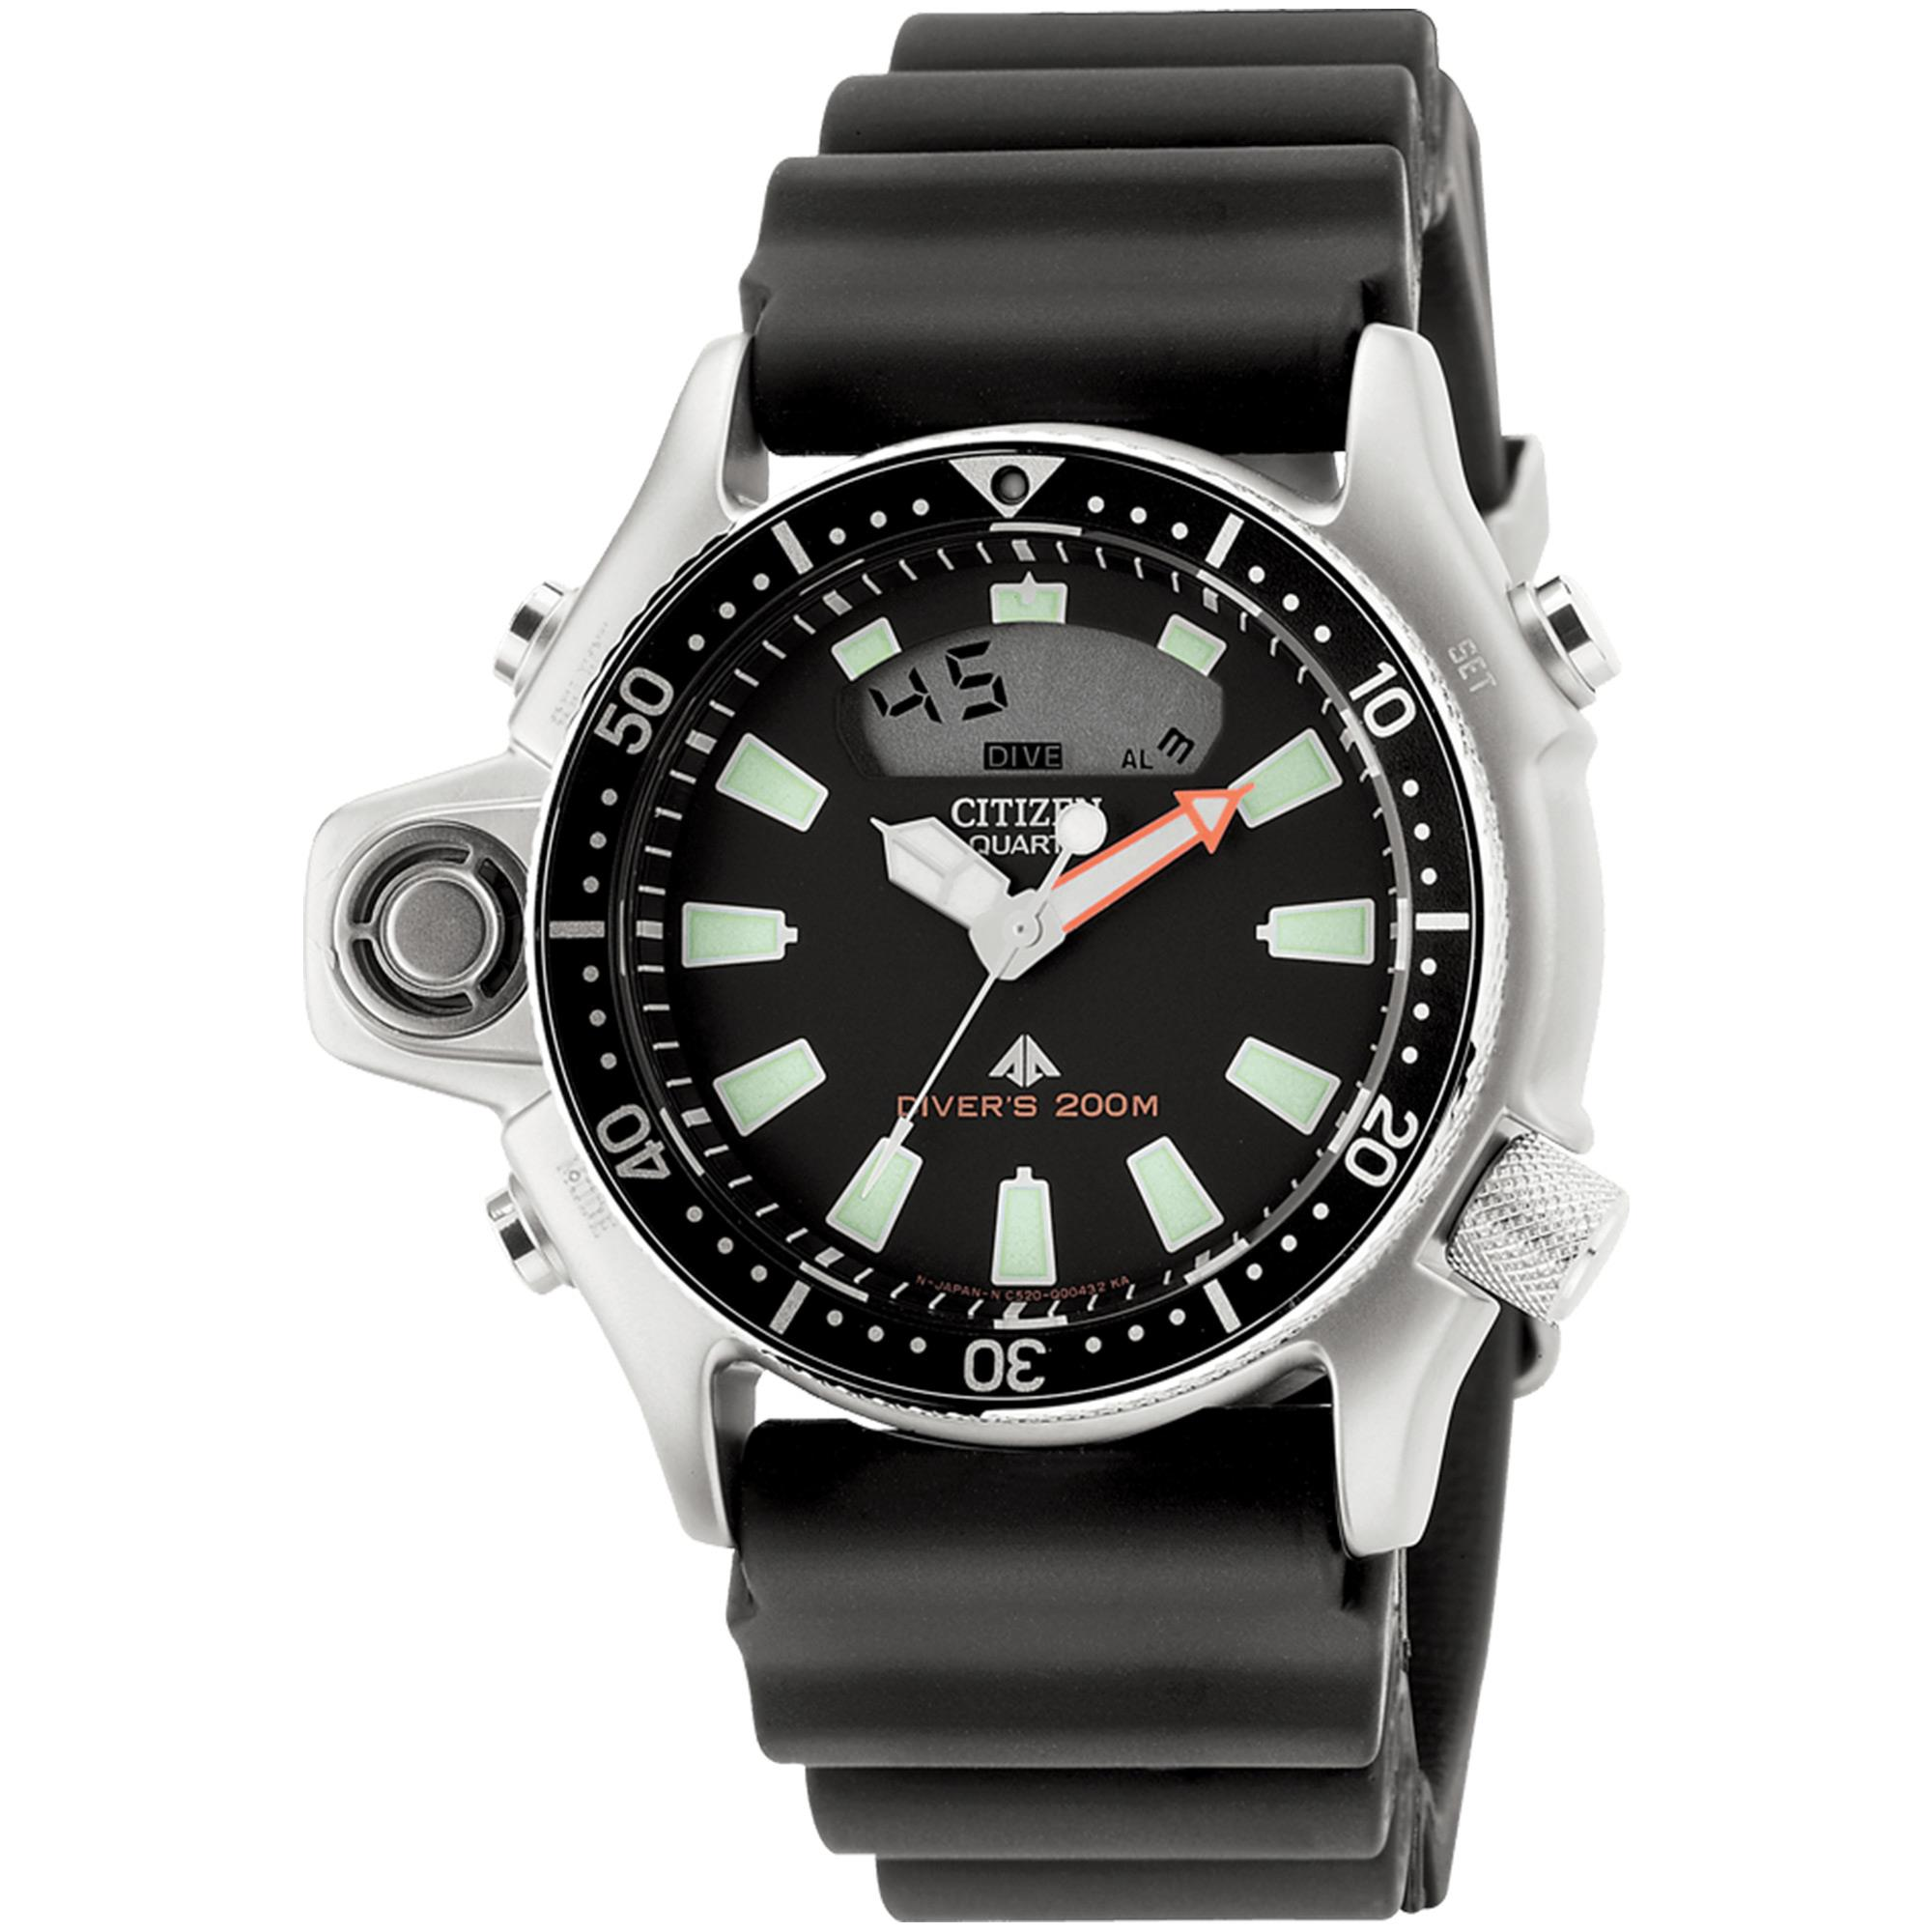 JP2000-08E CITIZEN UOMO ACQUALAND - CITIZEN